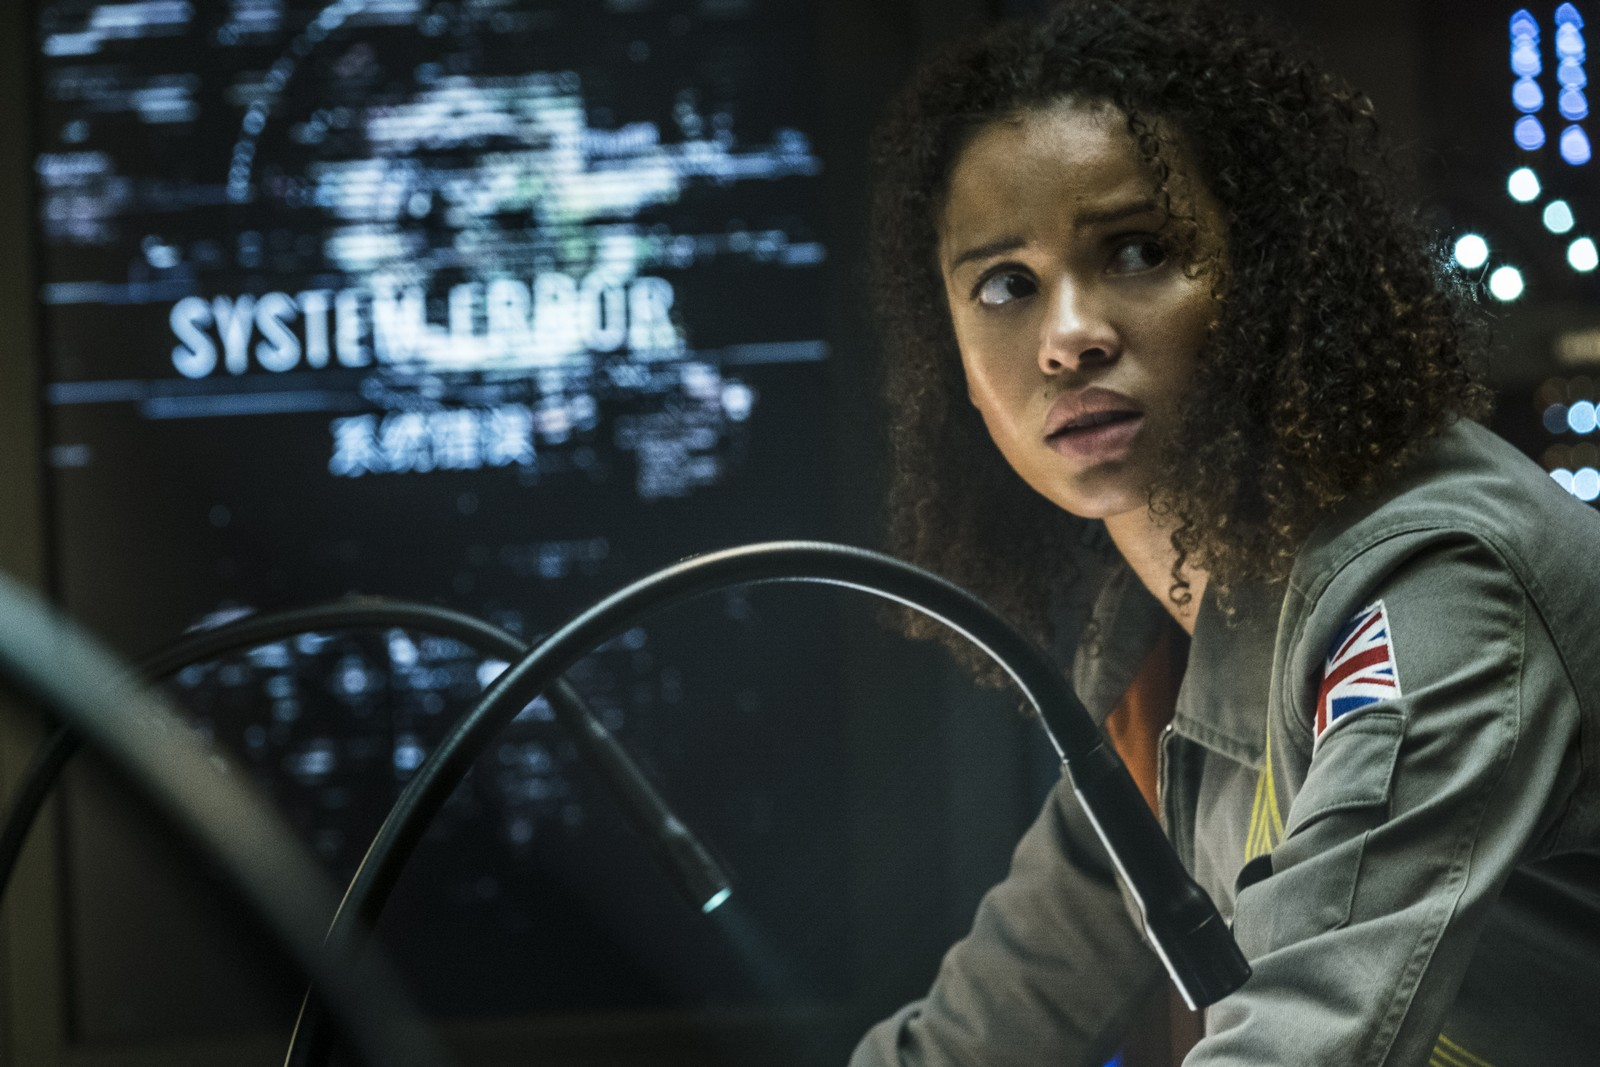 The Cloverfield Paradox Reviews Roundup: What Are Critics Saying?